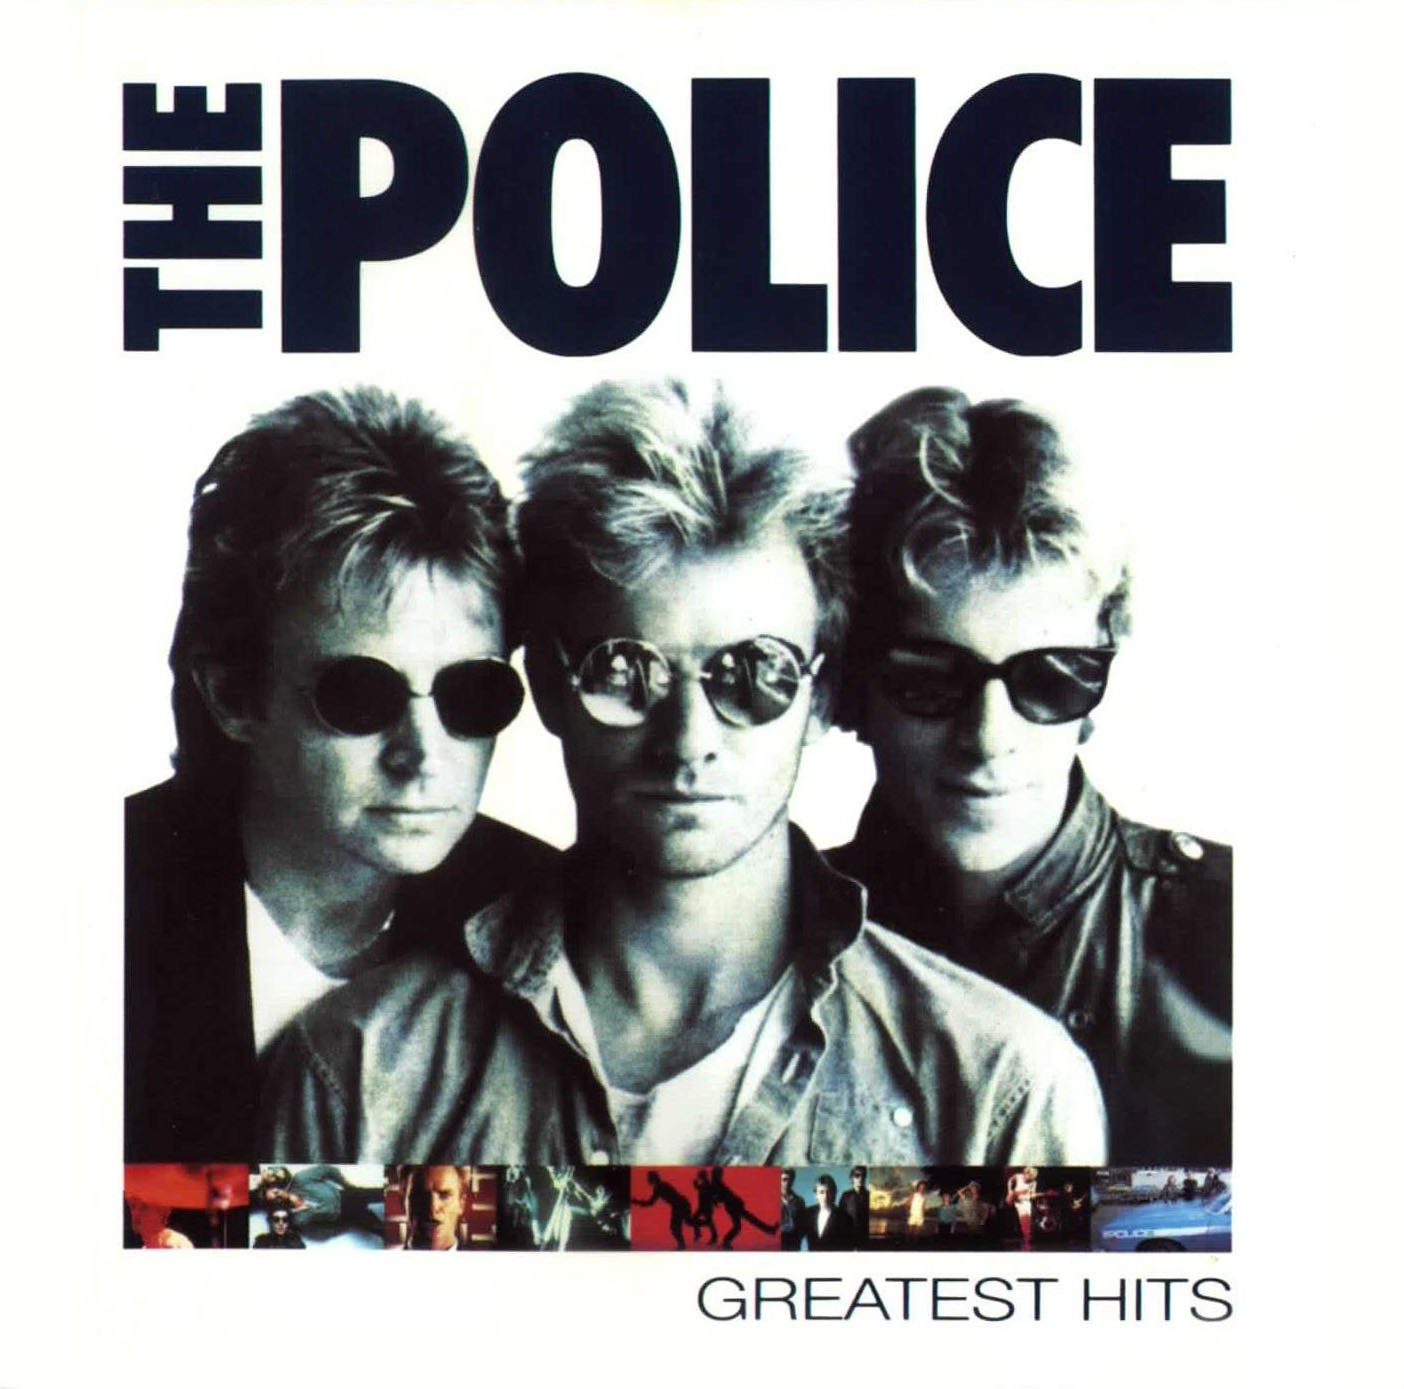 'Message in a bottle' by The Police